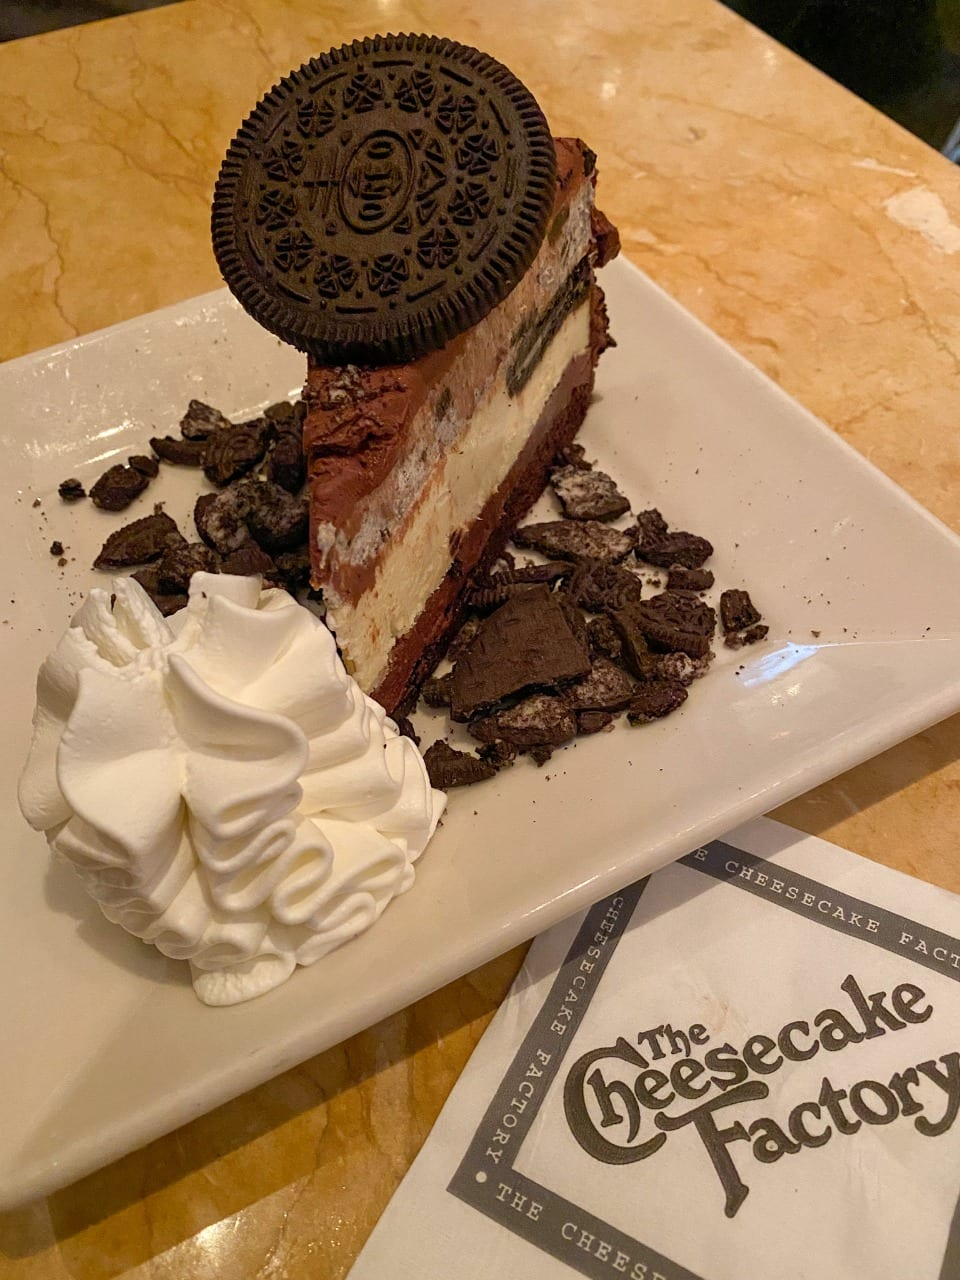 Cheesecake Factory no outlet Sawgrass Mill